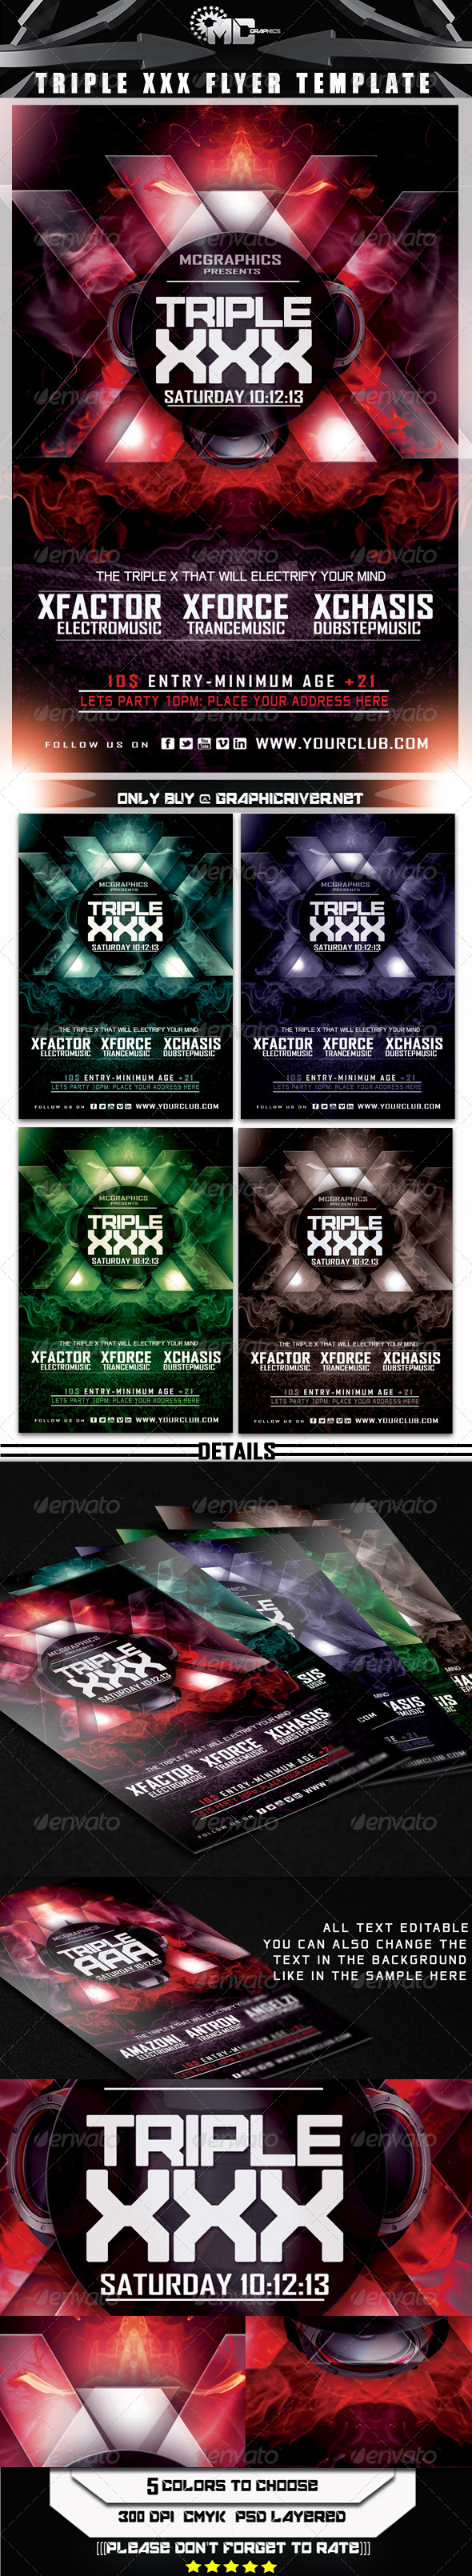 GraphicRiver Triple XXX Flyer Template 5534724